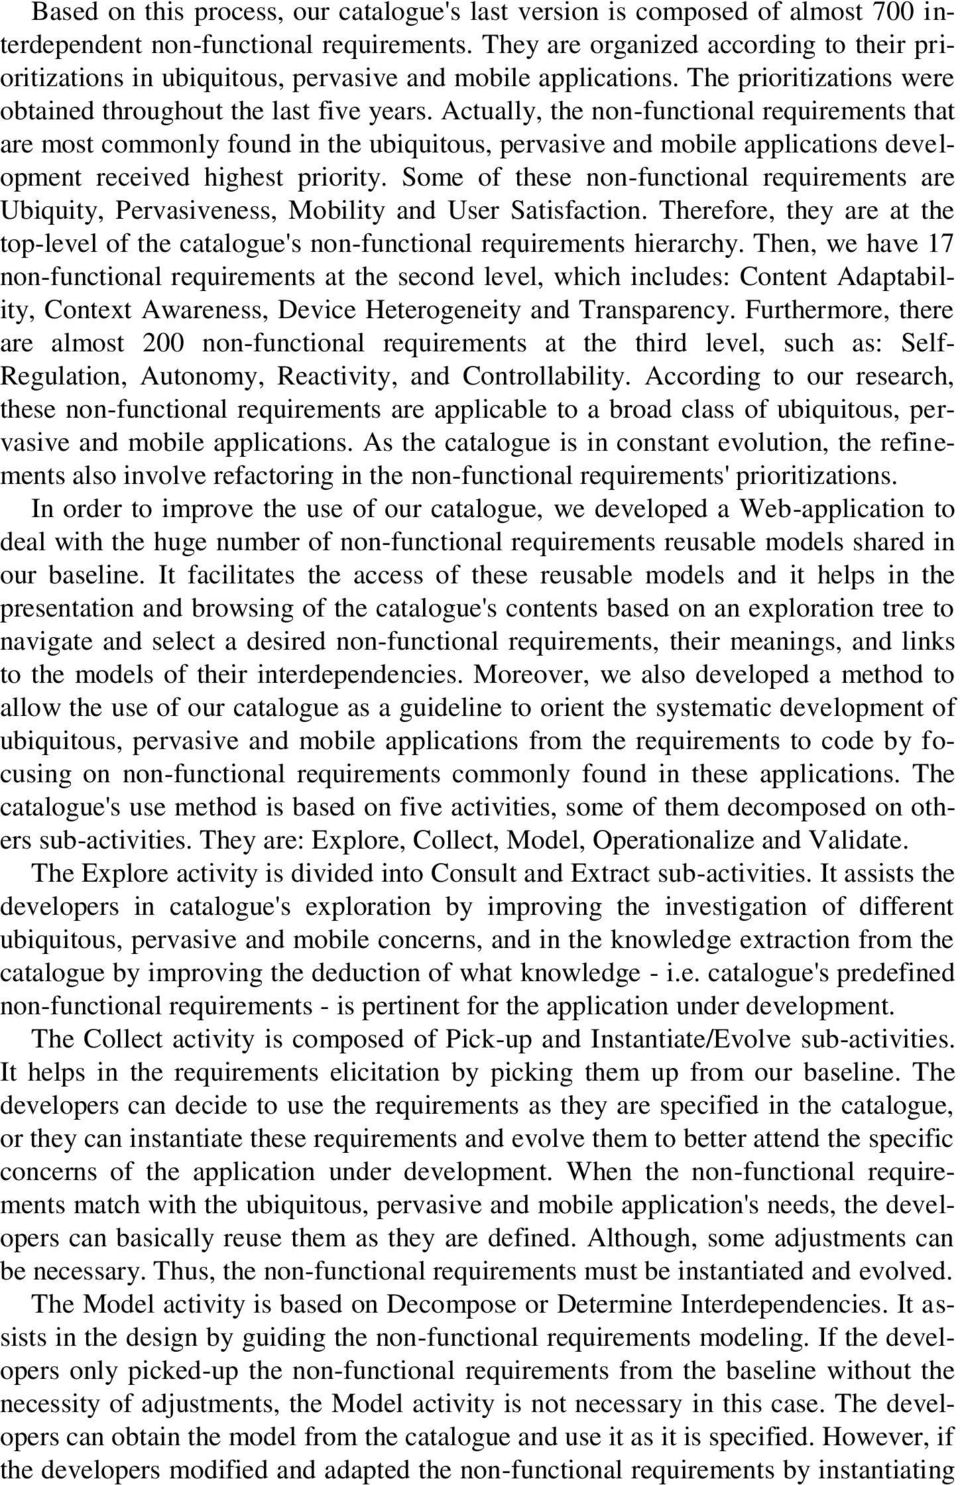 Ubiquitous, Pervasive and Mobile Computing: A Reusable-Models-based